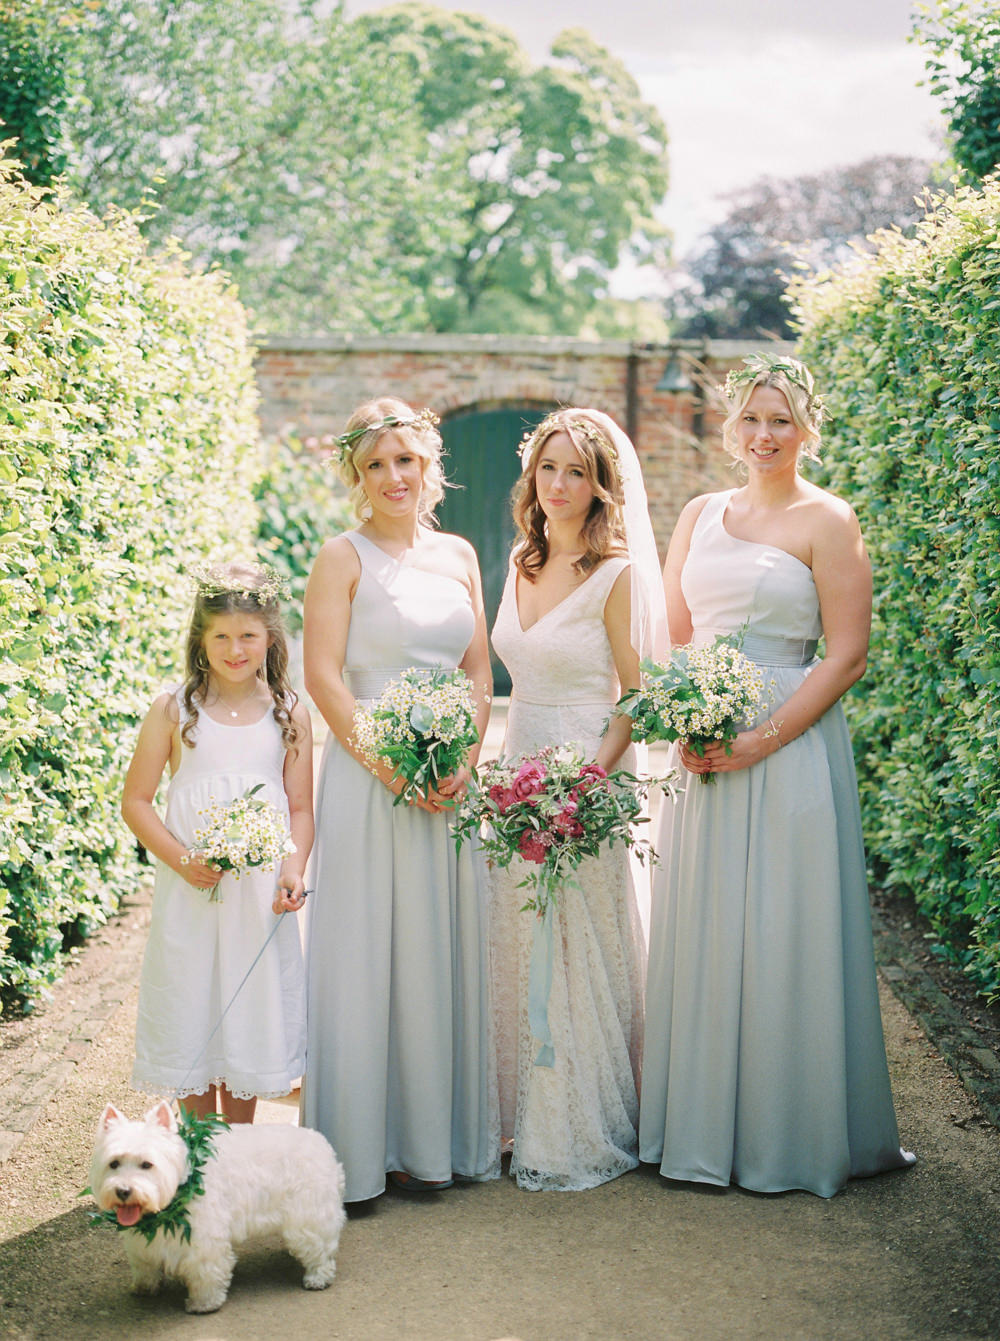 Scampston hall outdoor ceremony with bespoke jane elmer gown image by a hrefhttpsamanthawardphotography image by samantha ward photography bespoke jane elmer wedding gown ombrellifo Gallery